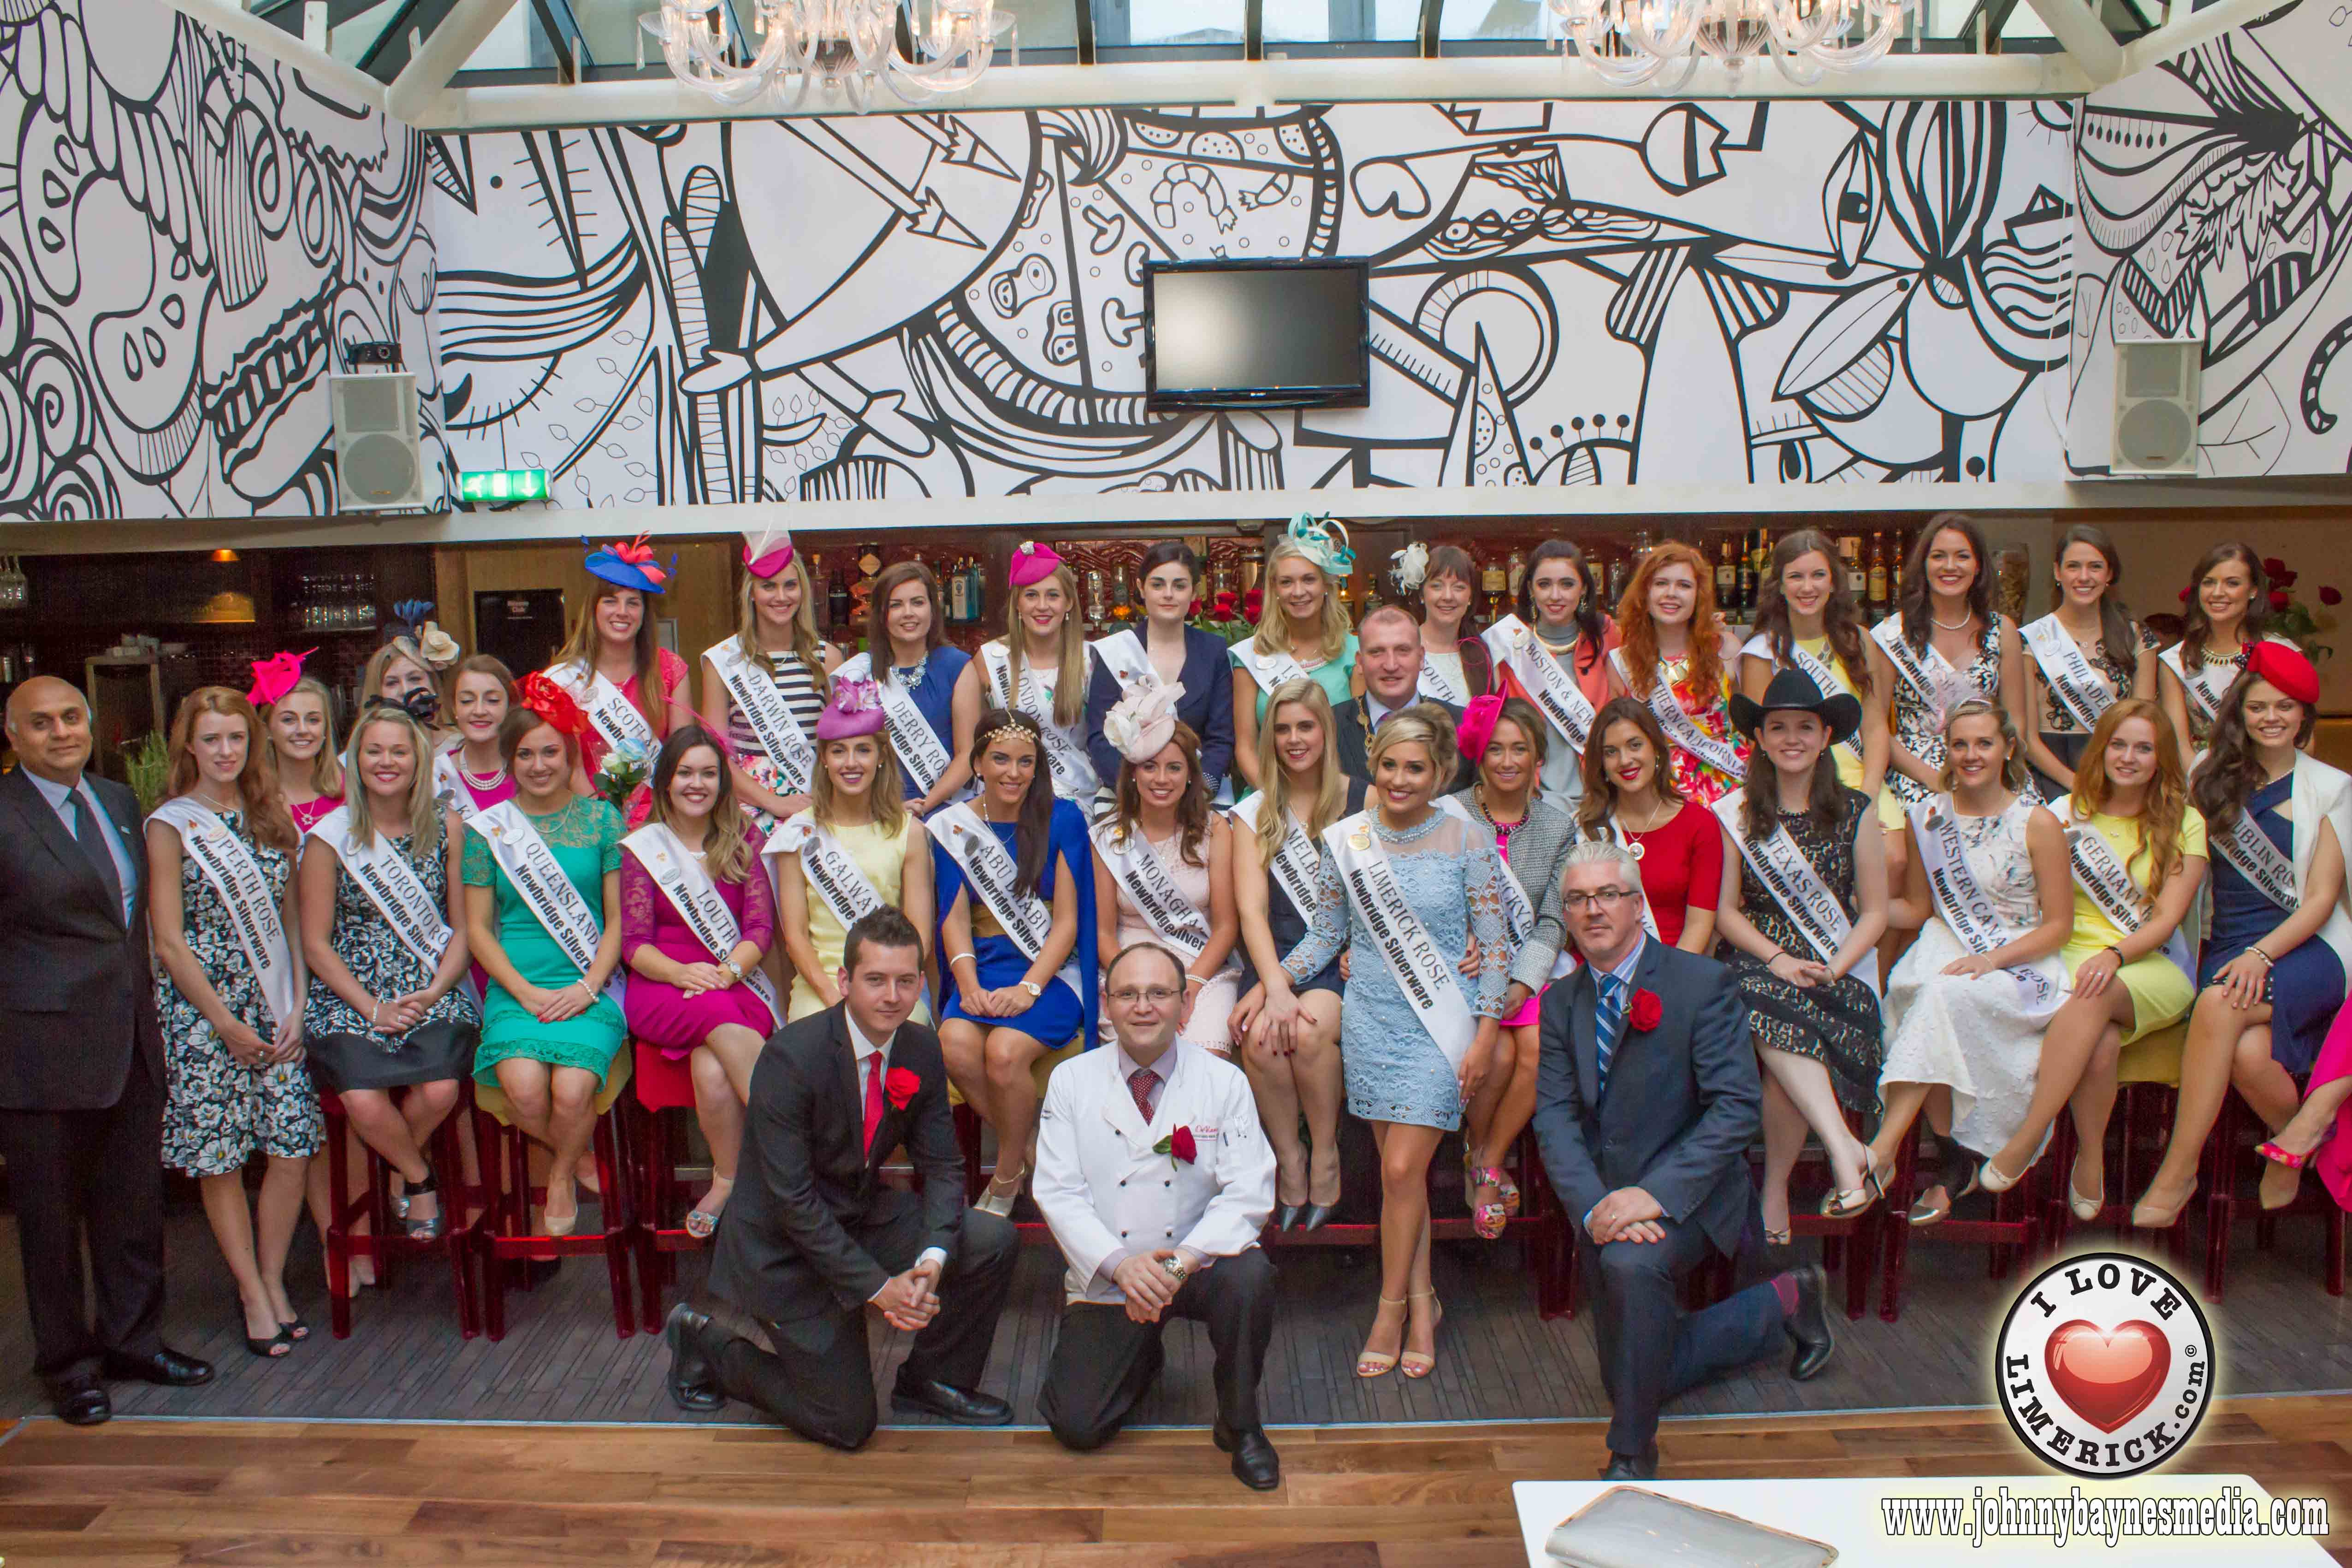 The 2015 International Rose of Tralee Festival almost at its end